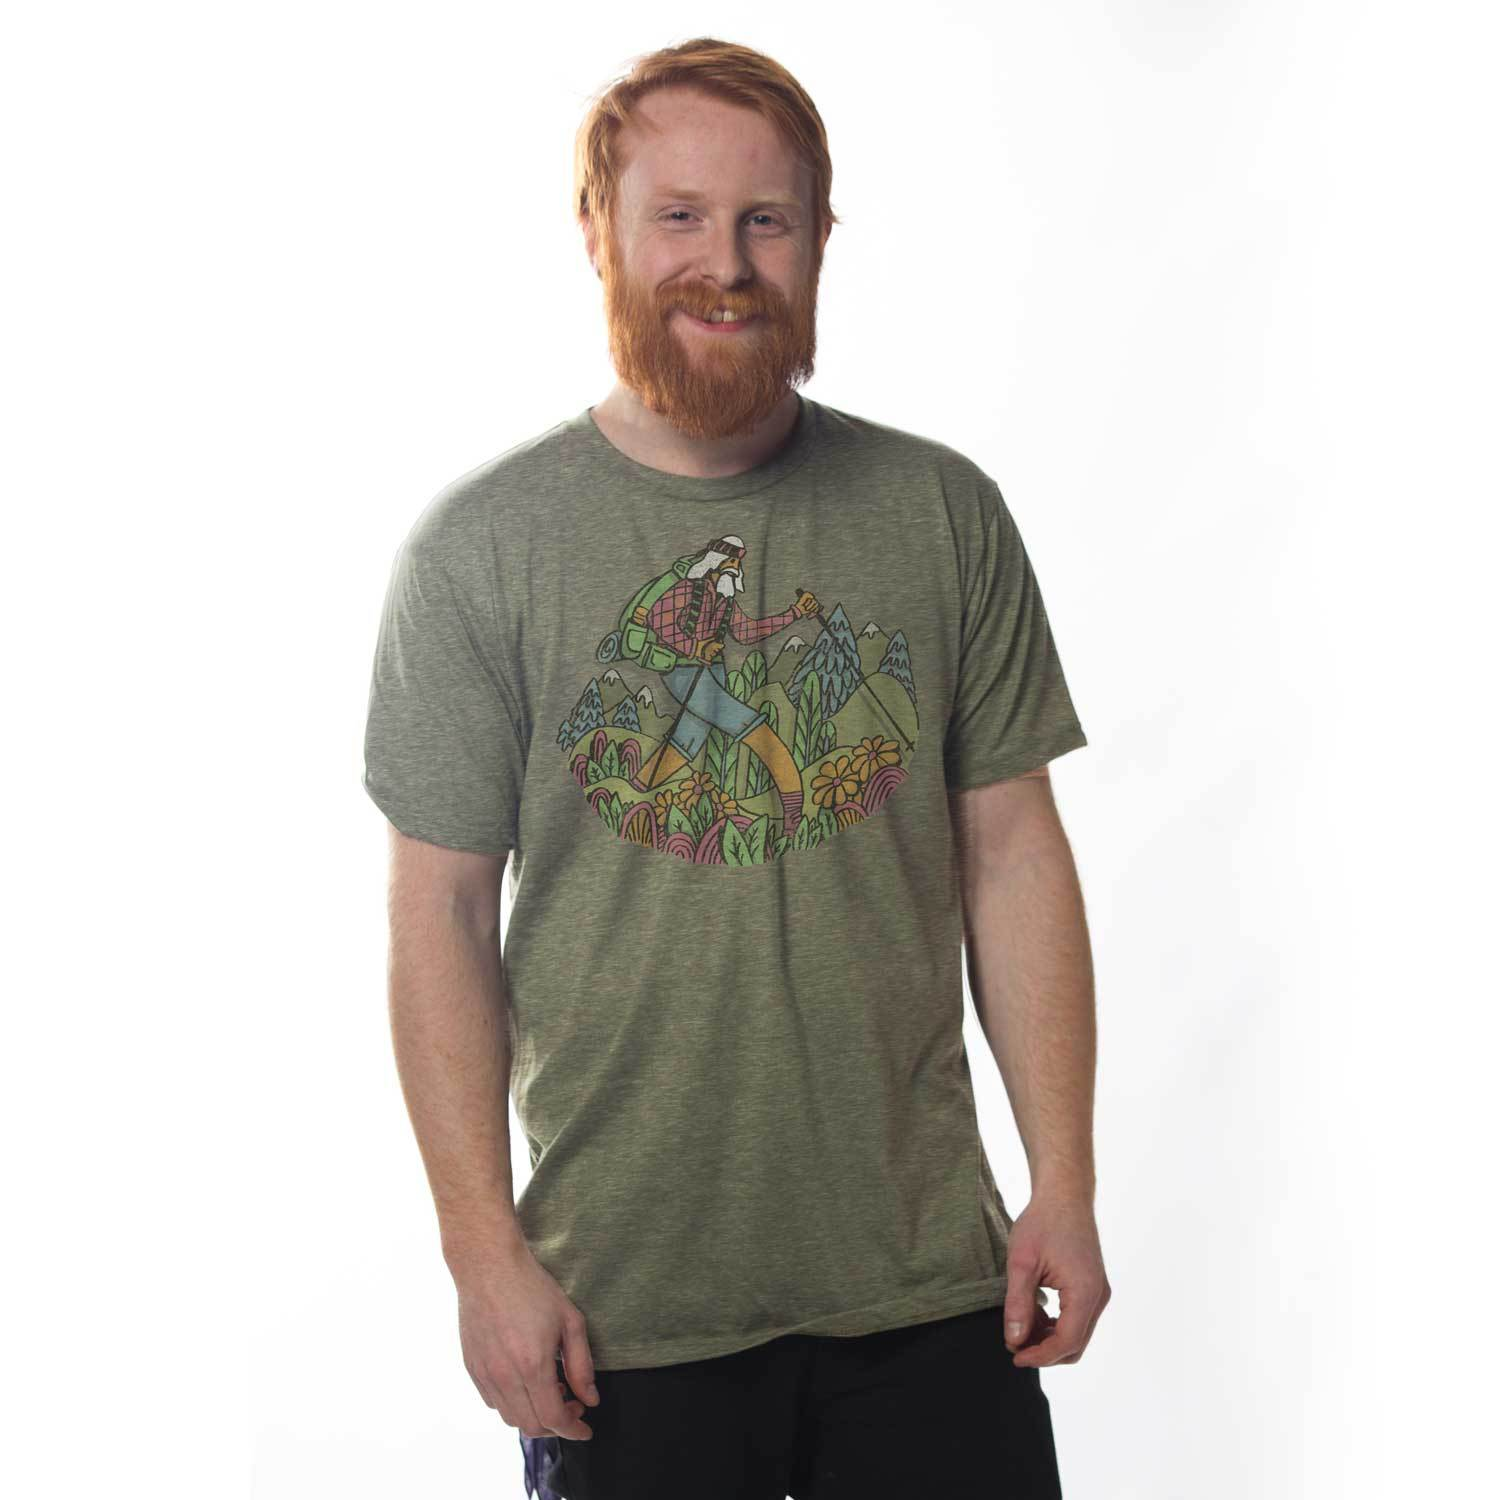 Men's Wise Hiker Vintage Inspired T-Shirt | Retro Hiking Graphic Tee | Solid Threads